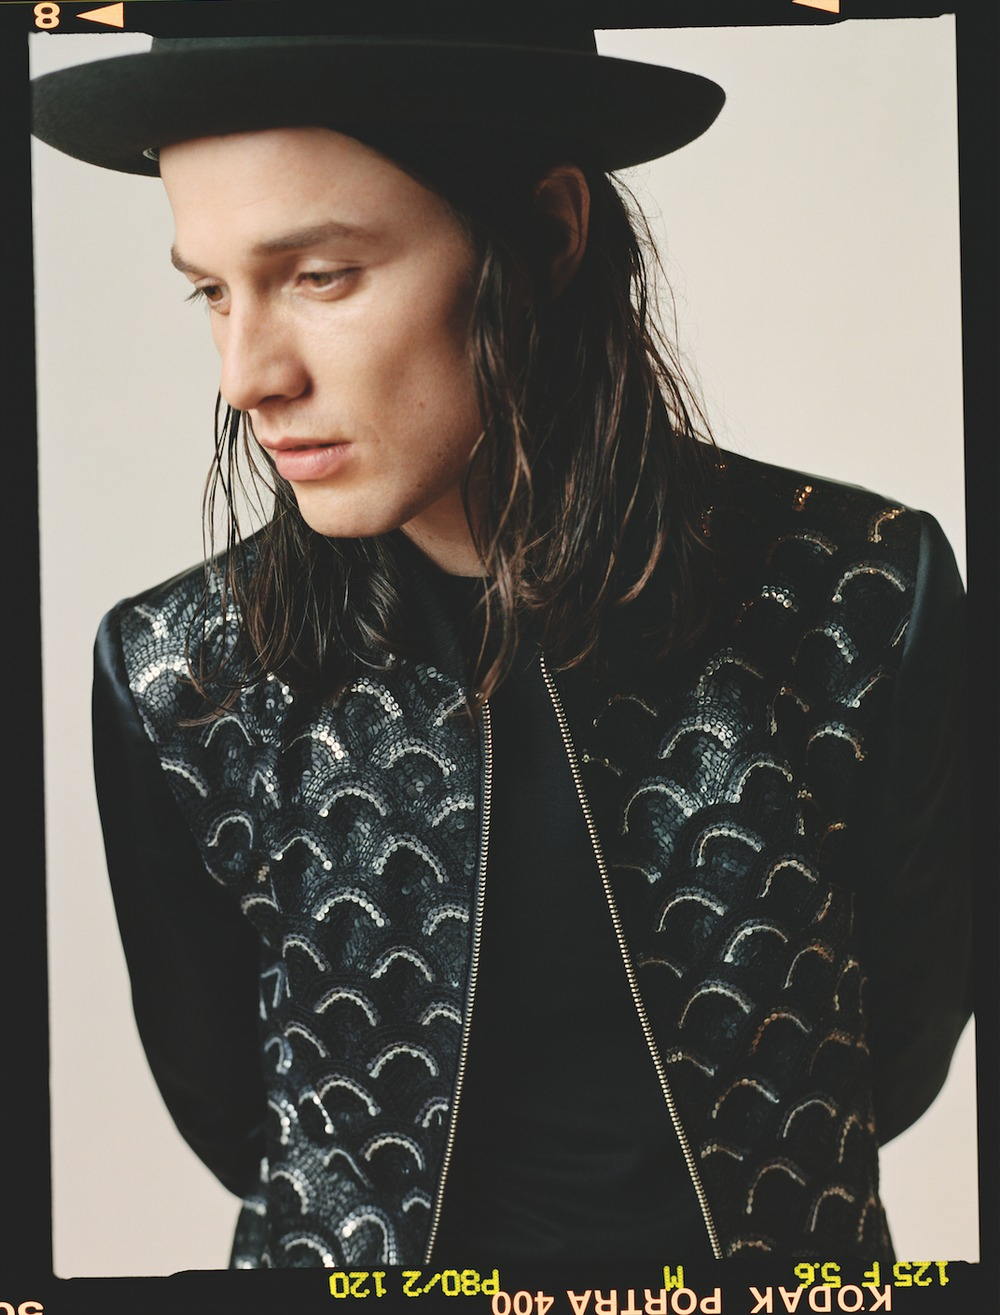 TOPMAN x James Bay Announce Collaborative Collection